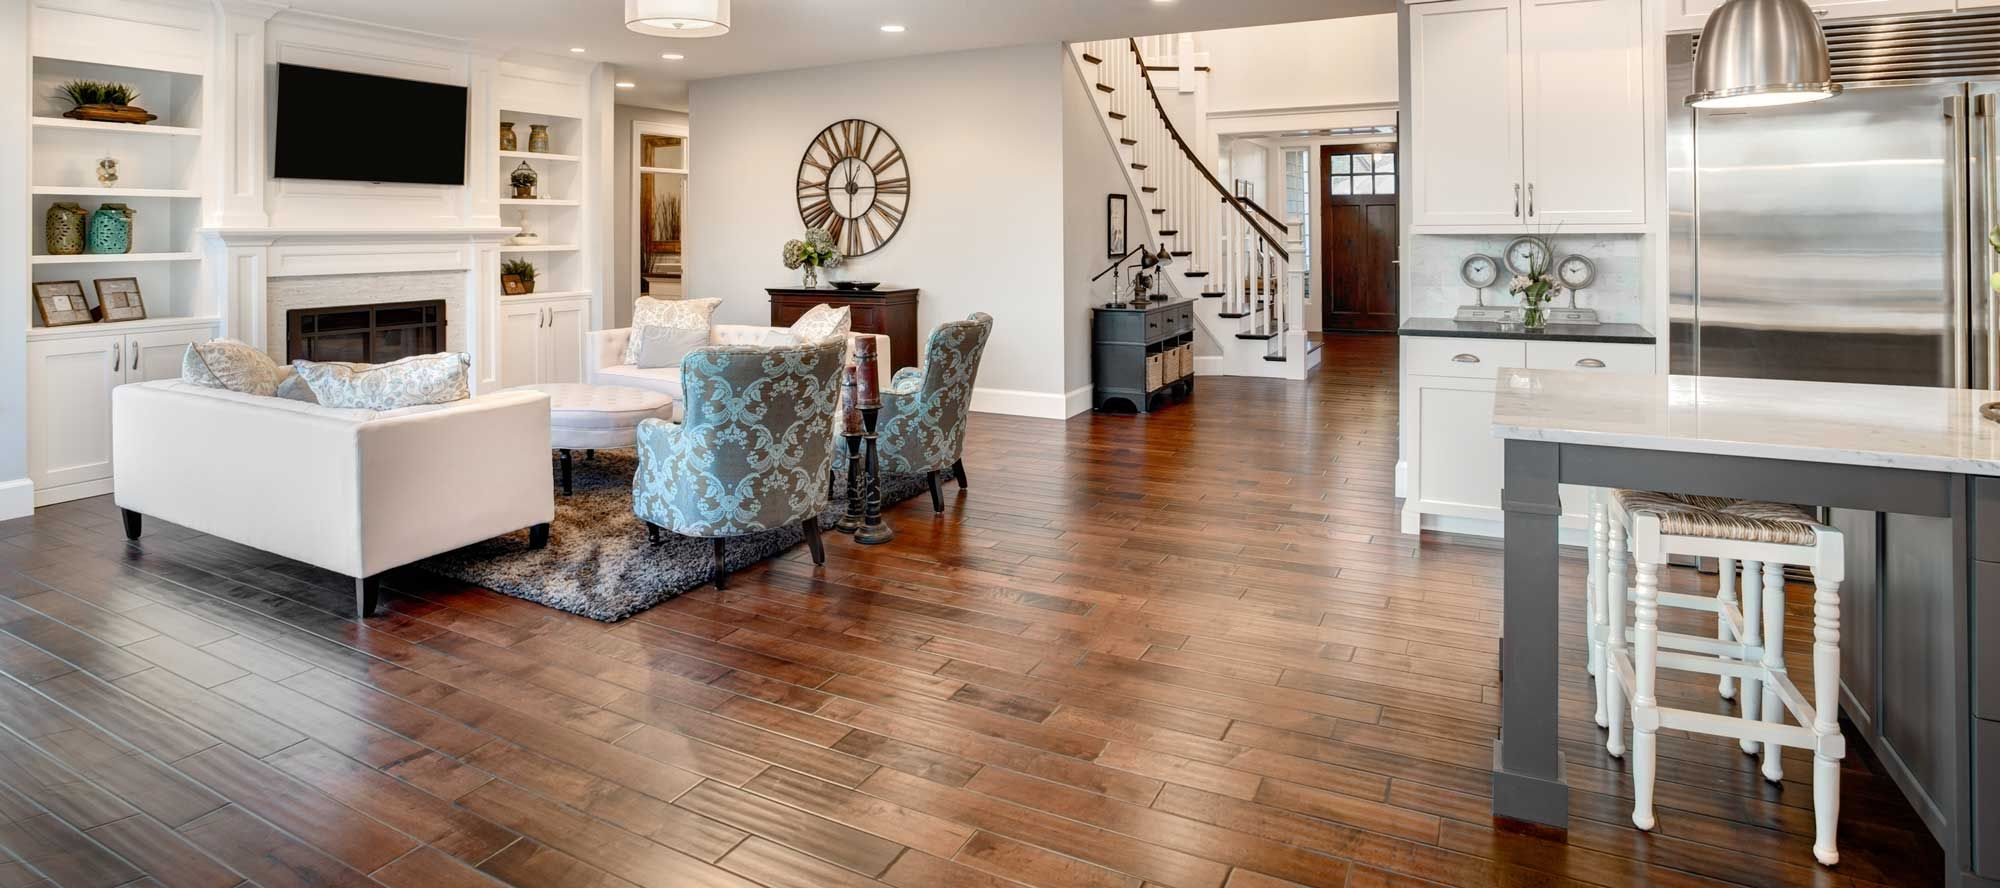 Cost To Install Hardwood Floor 2020 Calculator And Price Guide